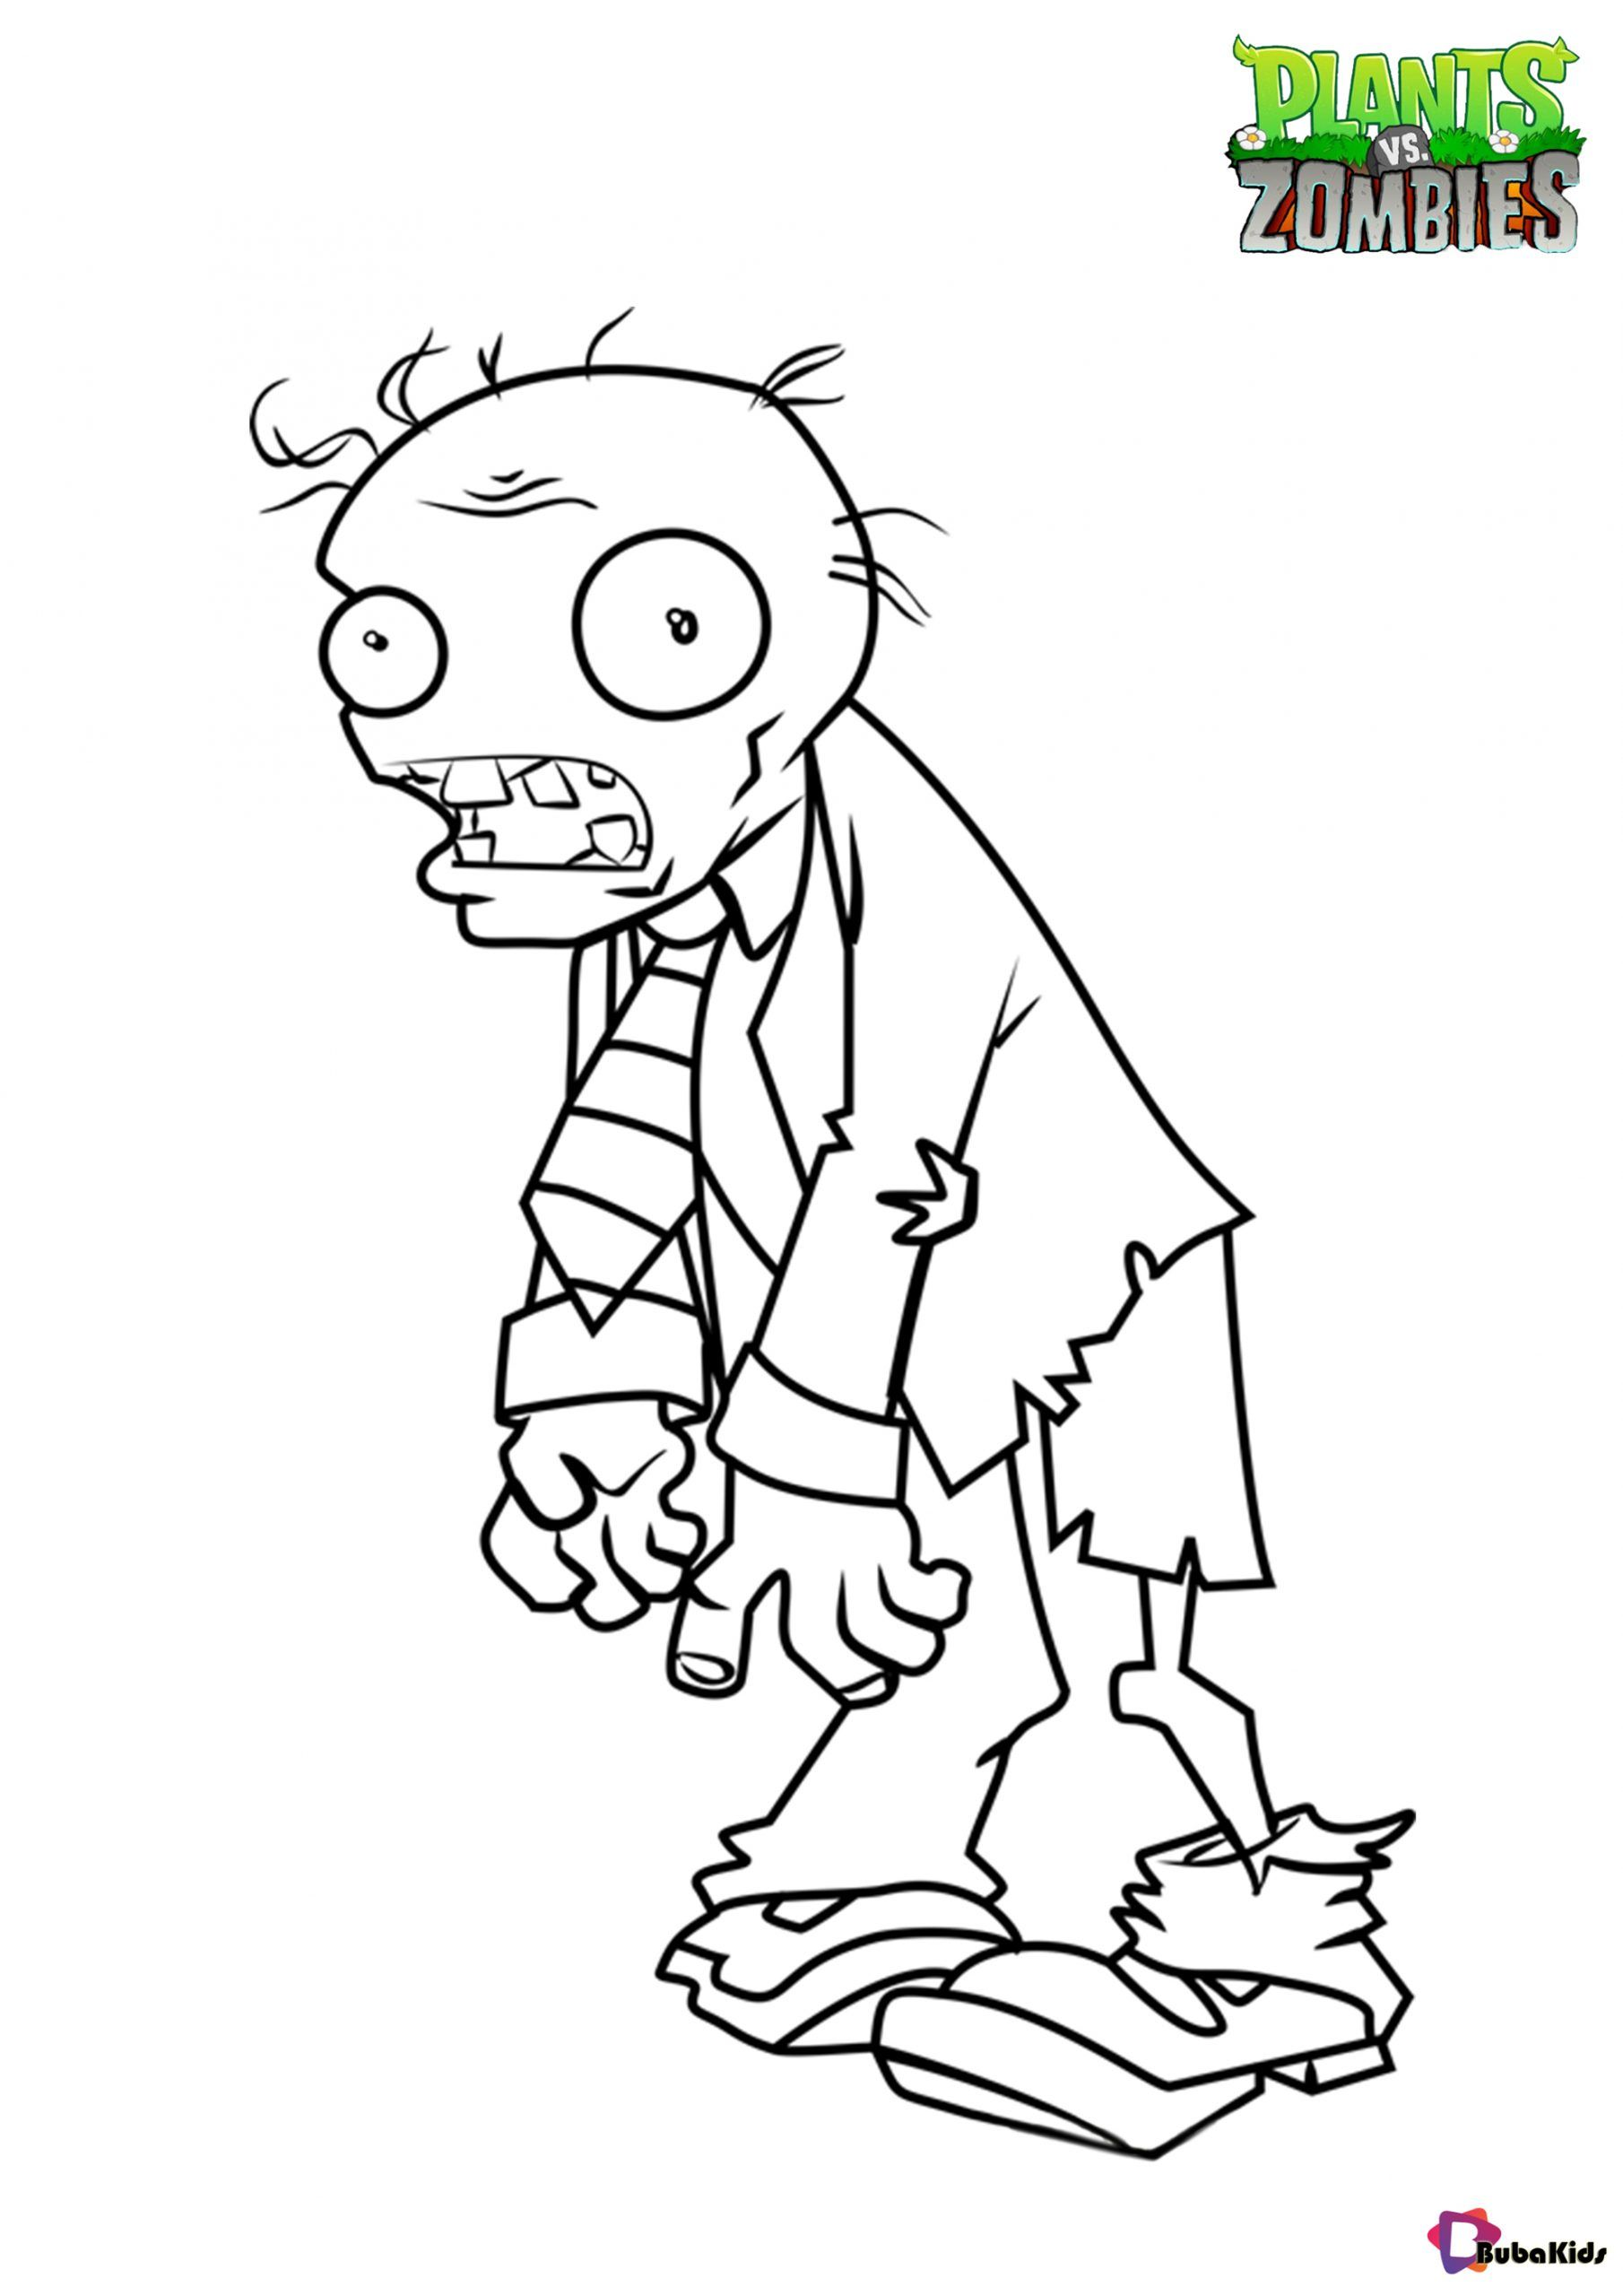 Free Download Plants Vs Zombies Coloring Page Collection Of Cartoon Coloring Pag Zombie Coloring Pages Cartoon Coloring Pages Plants Vs Zombies Coloring Pages